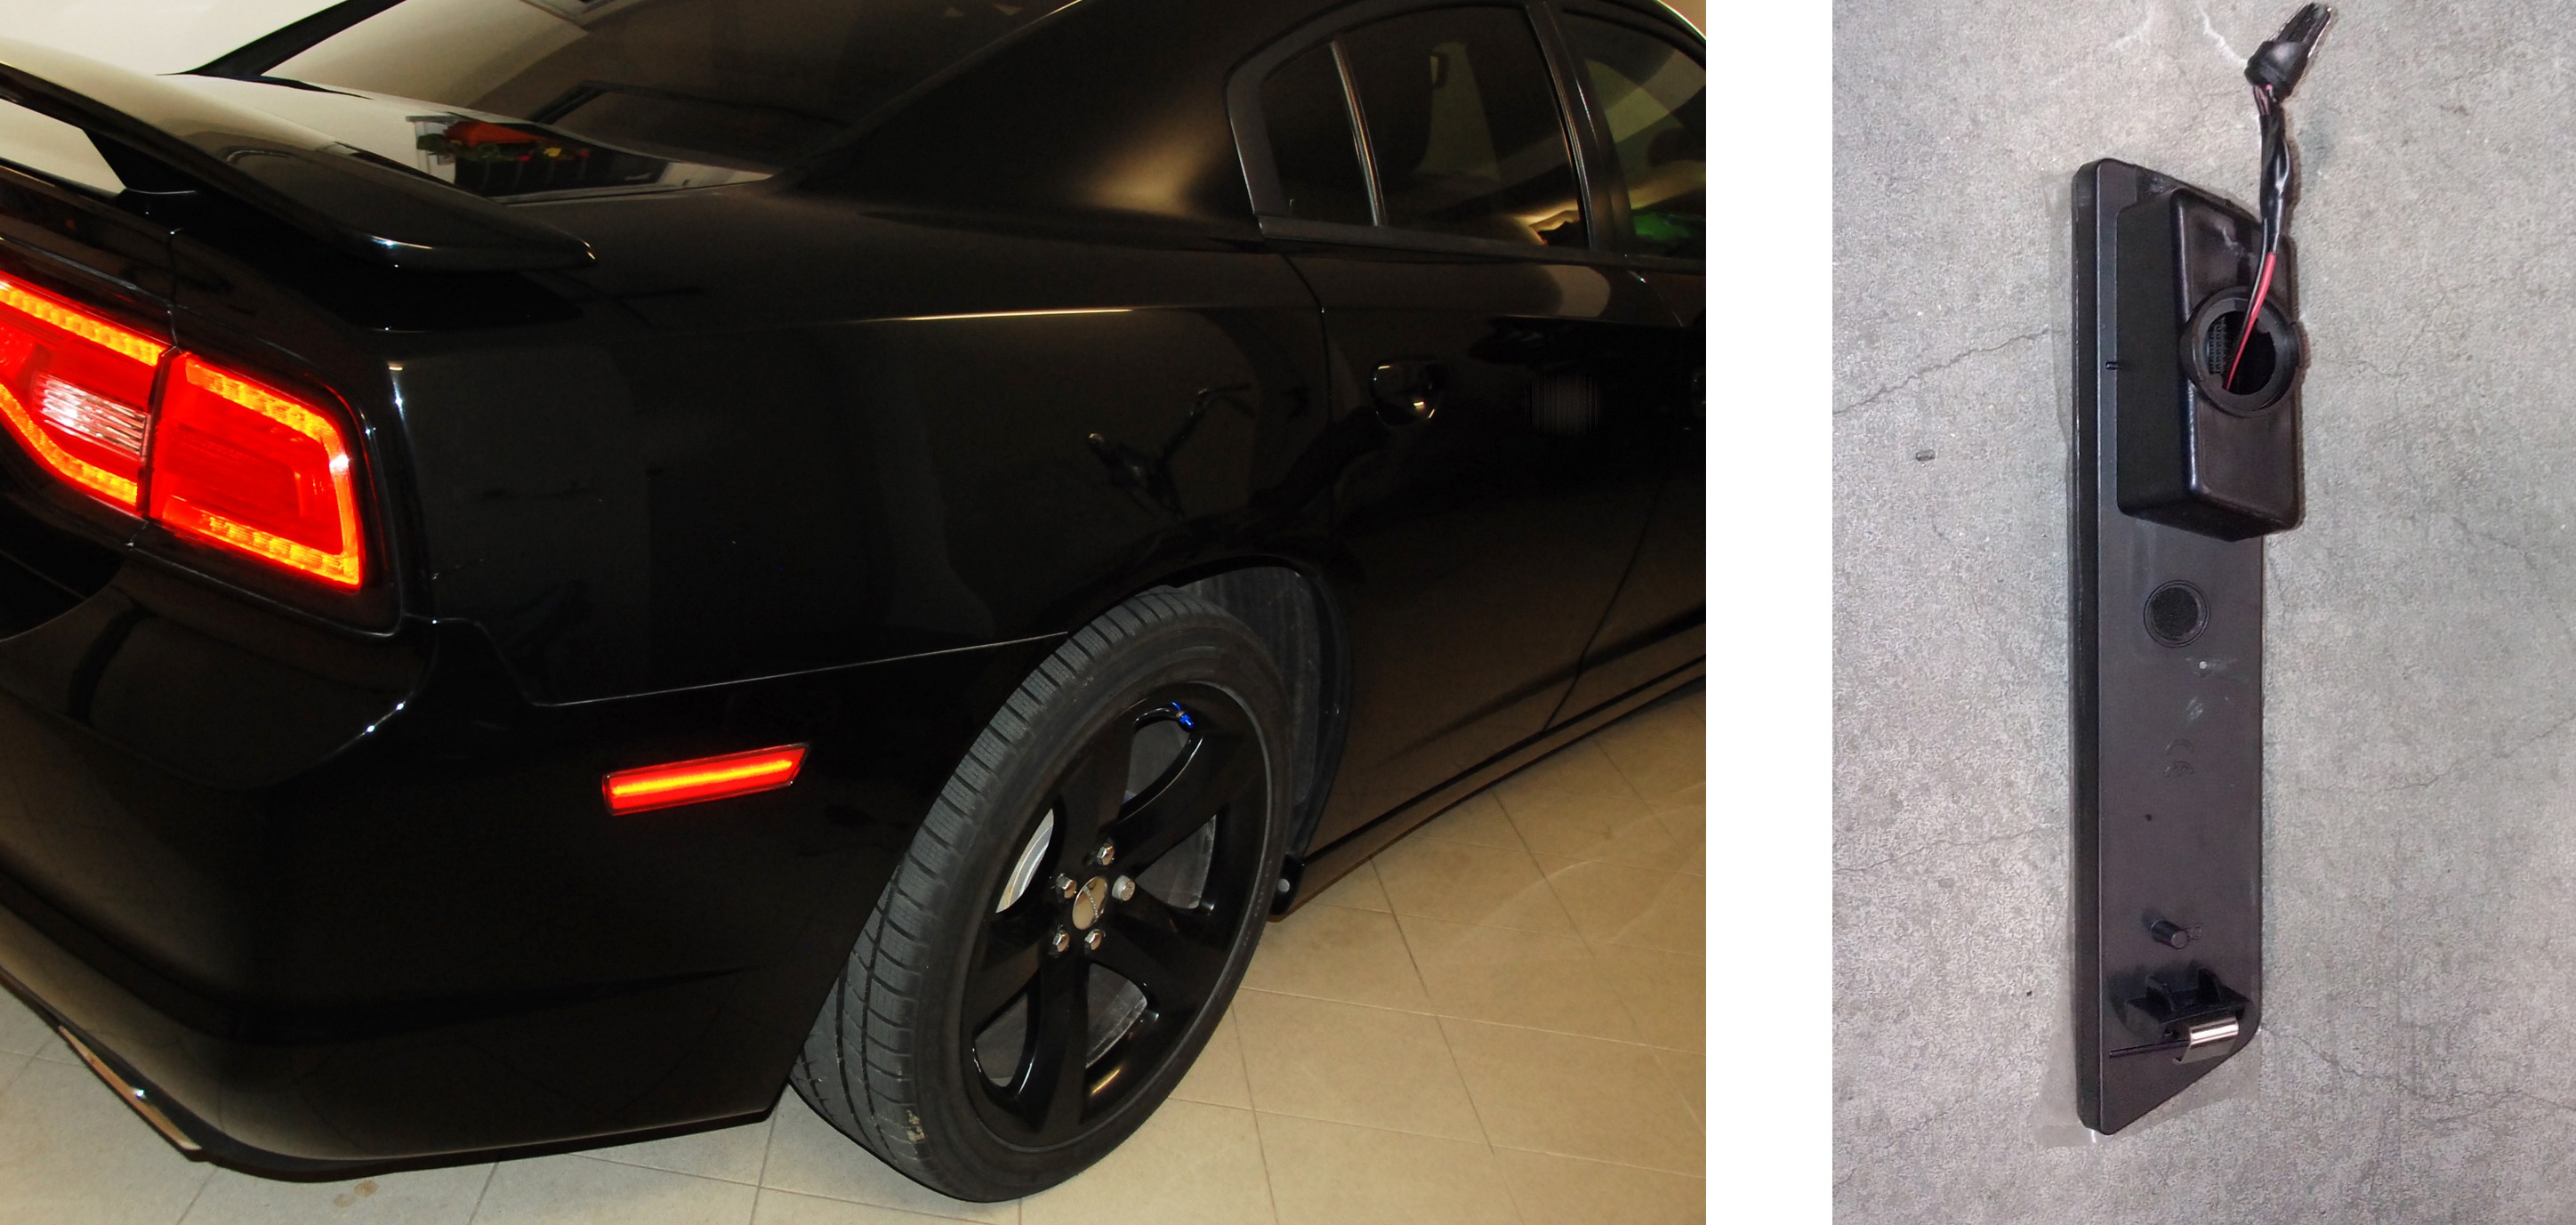 Dodge Charger, fanali laterali, side markers, calcolo corrente LED, resistore, resistenza